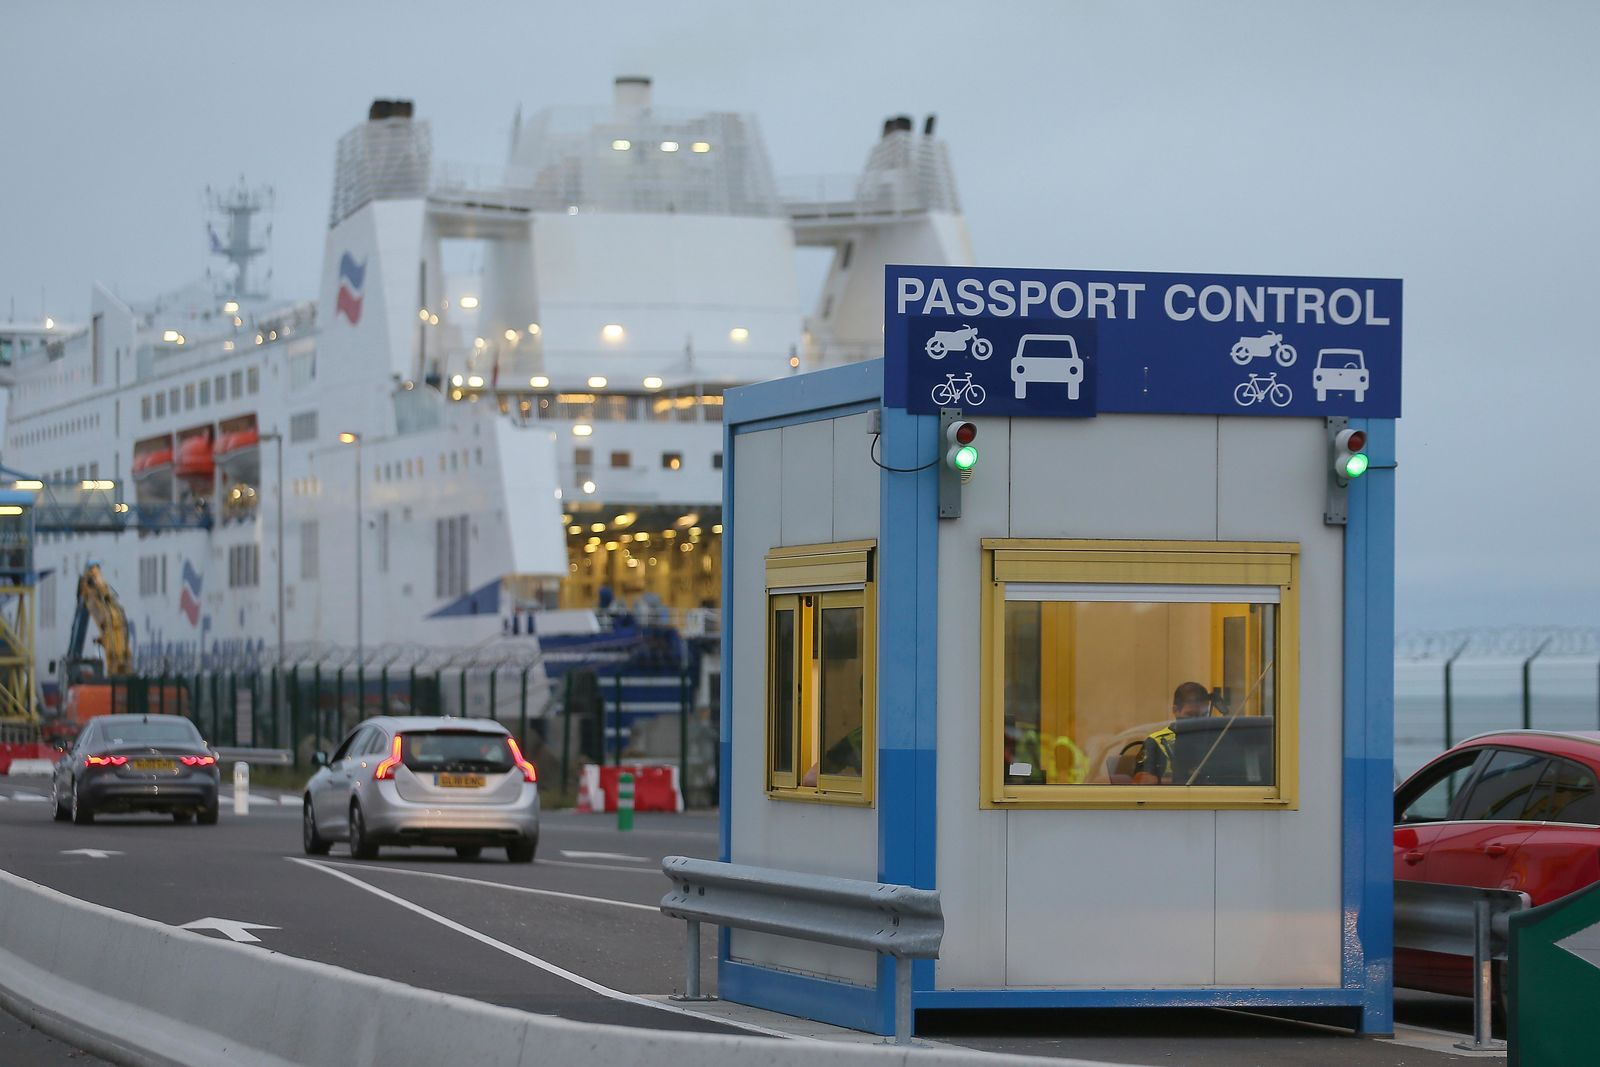 A French custom officer works in a booth at the transit zone at the port of Ouistreham, Normandy, Thursday, Sept.12, 2019. France has trained 600 new customs officers and built extra parking lots arounds its ports to hold vehicles that will have to go through extra checks if there is no agreement ahead of Britain's exit from the EU, currently scheduled on Oct. 31. (AP Photo/David Vincent)